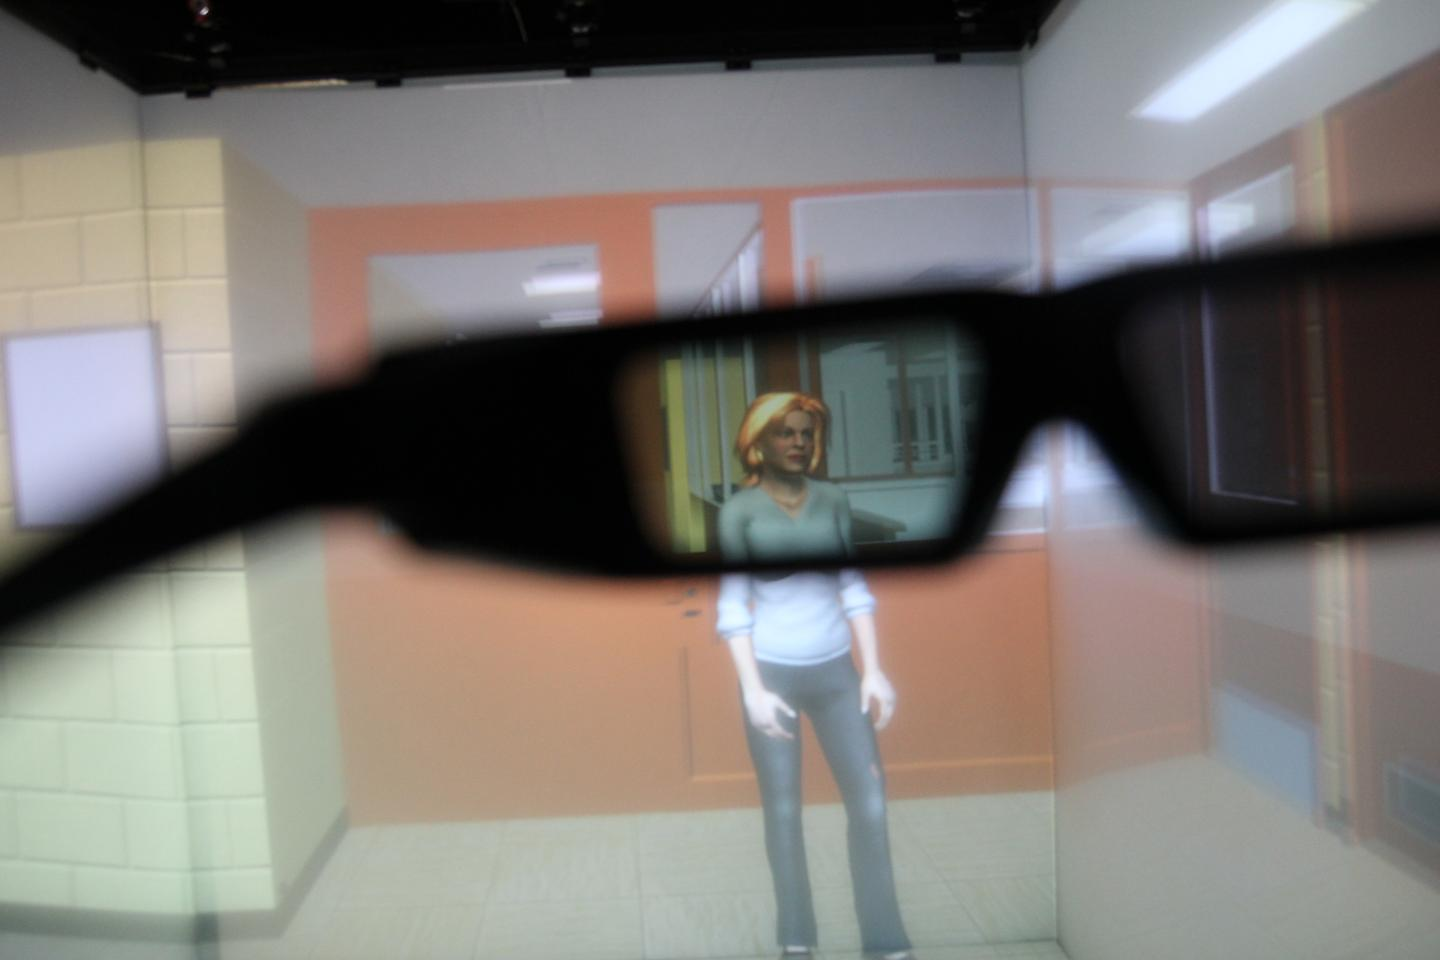 An eye-tracking VR system lets administrators see what parts of an image sex offenders are drawn to